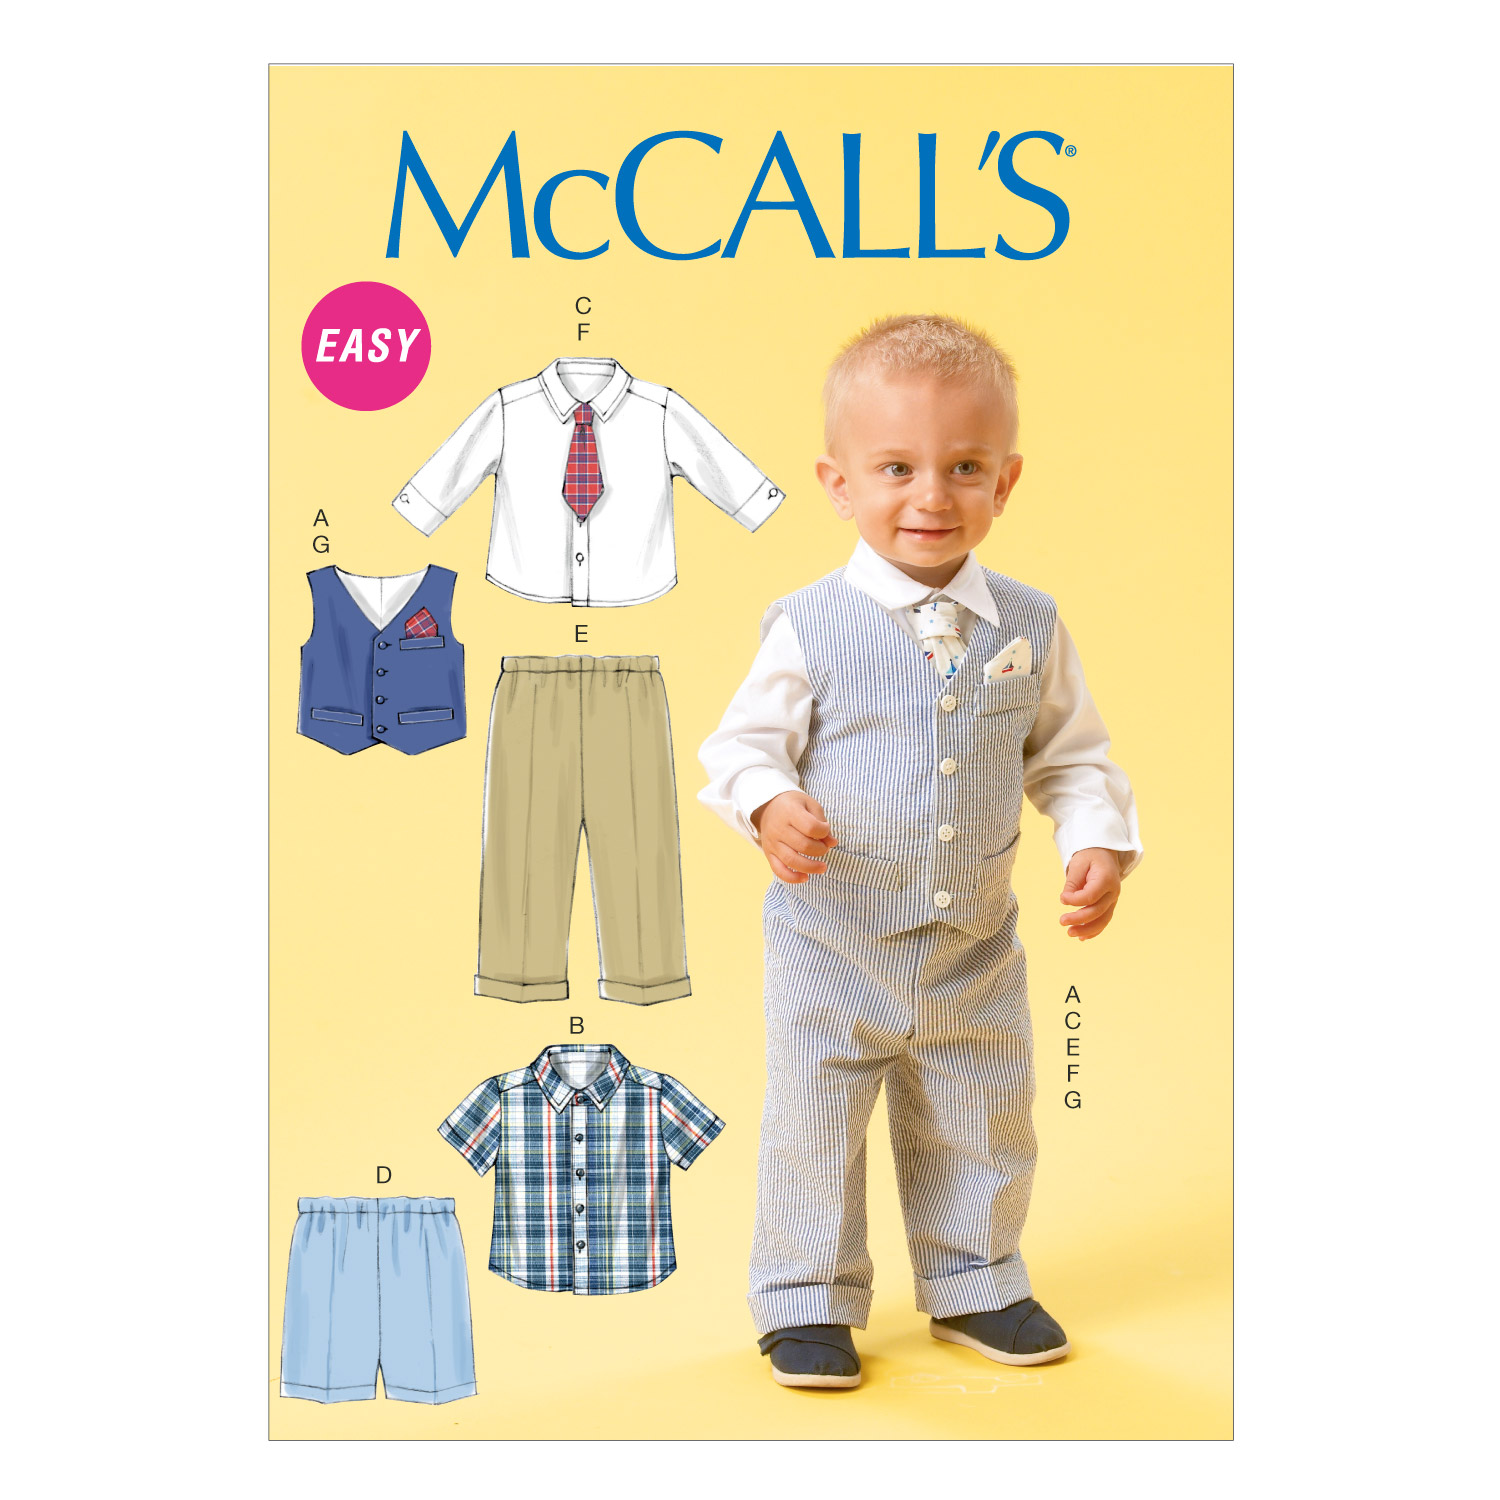 1950s Sewing Patterns- Dresses, Skirts, Tops, Pants McCalls Infants Vest Shirt Shorts Pants Tie and Pocket Square Pattern M6873 Size YA5 $12.48 AT vintagedancer.com